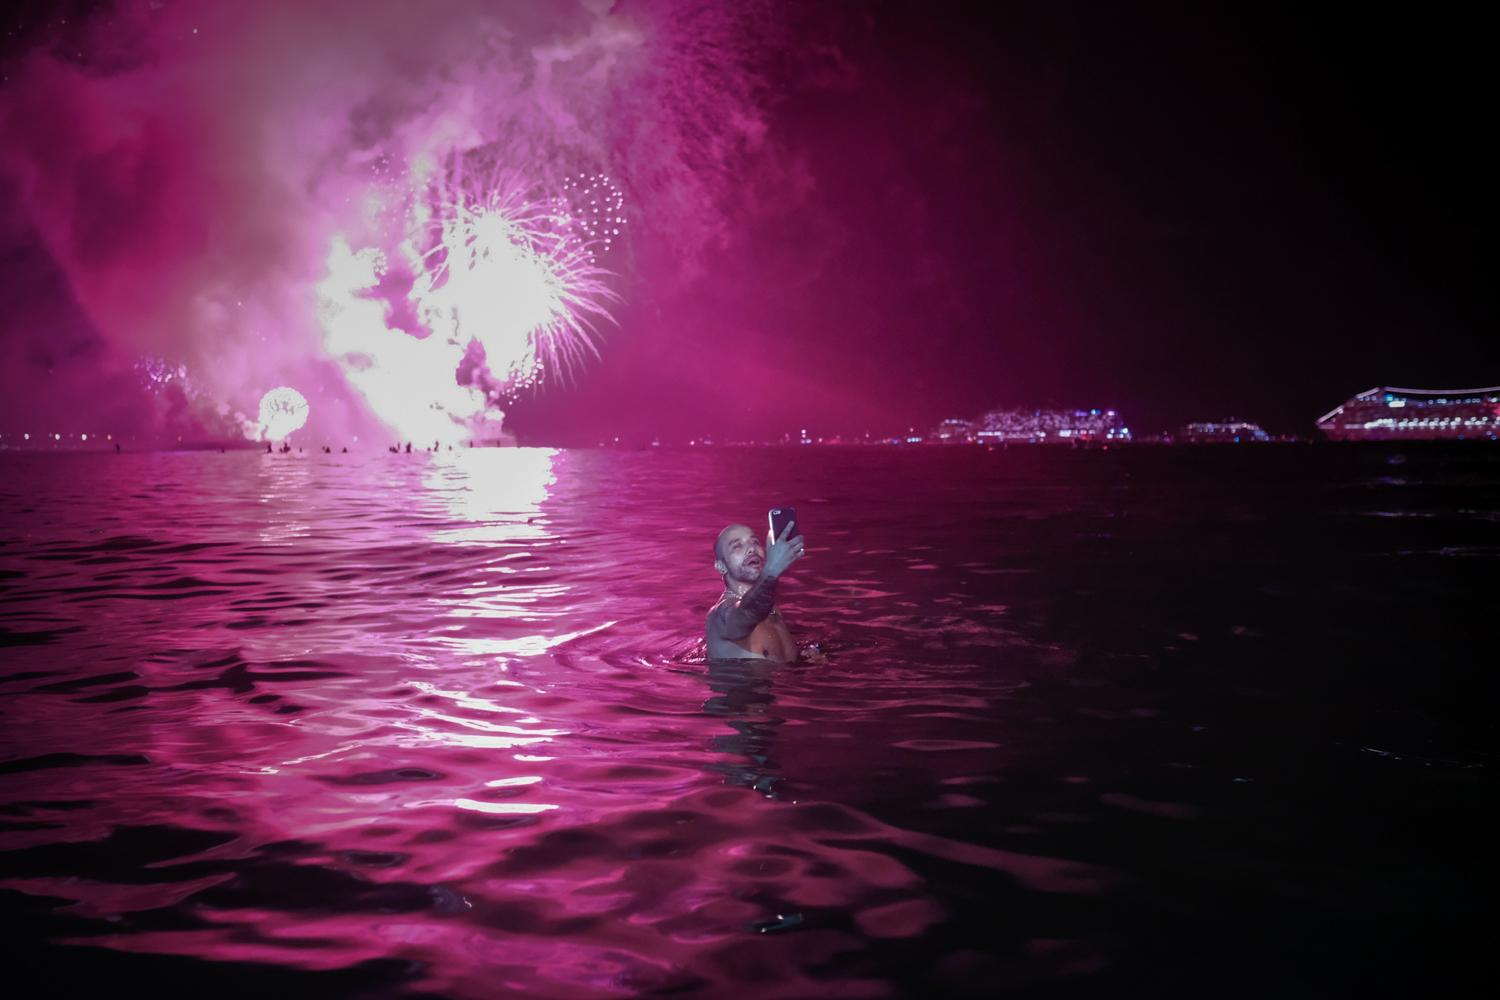 A man takes a selfie in front of fireworks at Copacabana beach during the 2018/2019 New Year's Eve celebrations, Rio de Janeiro, Brazil.